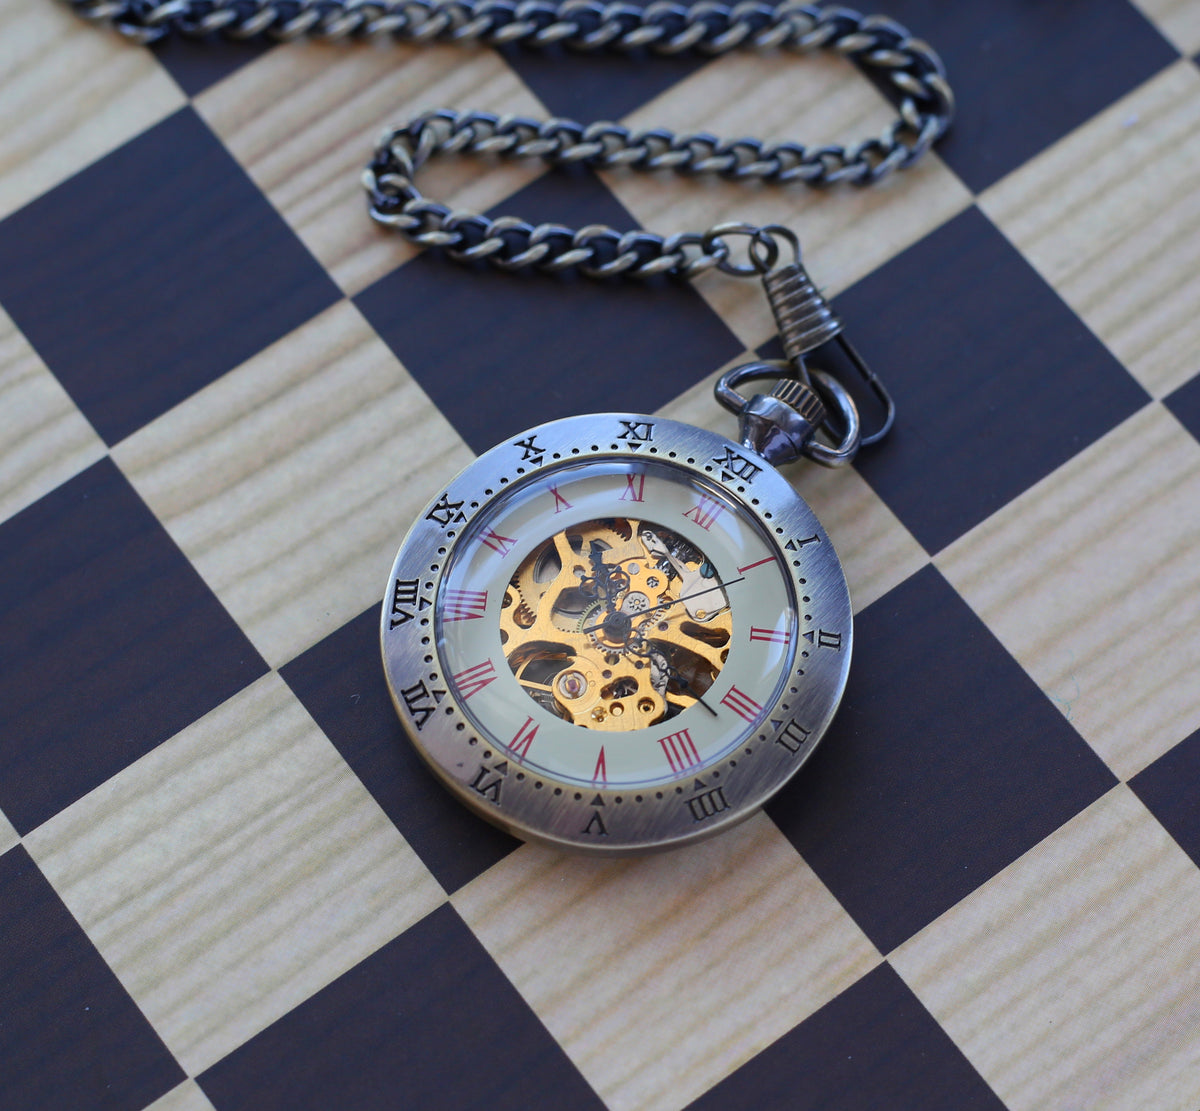 Prefect Wedding Gift Engravable Men's Pocket Watch Personalized Gift  Open Face Antique Gold Bronze Pocketwatch with chain wedding gifts for groomsmen